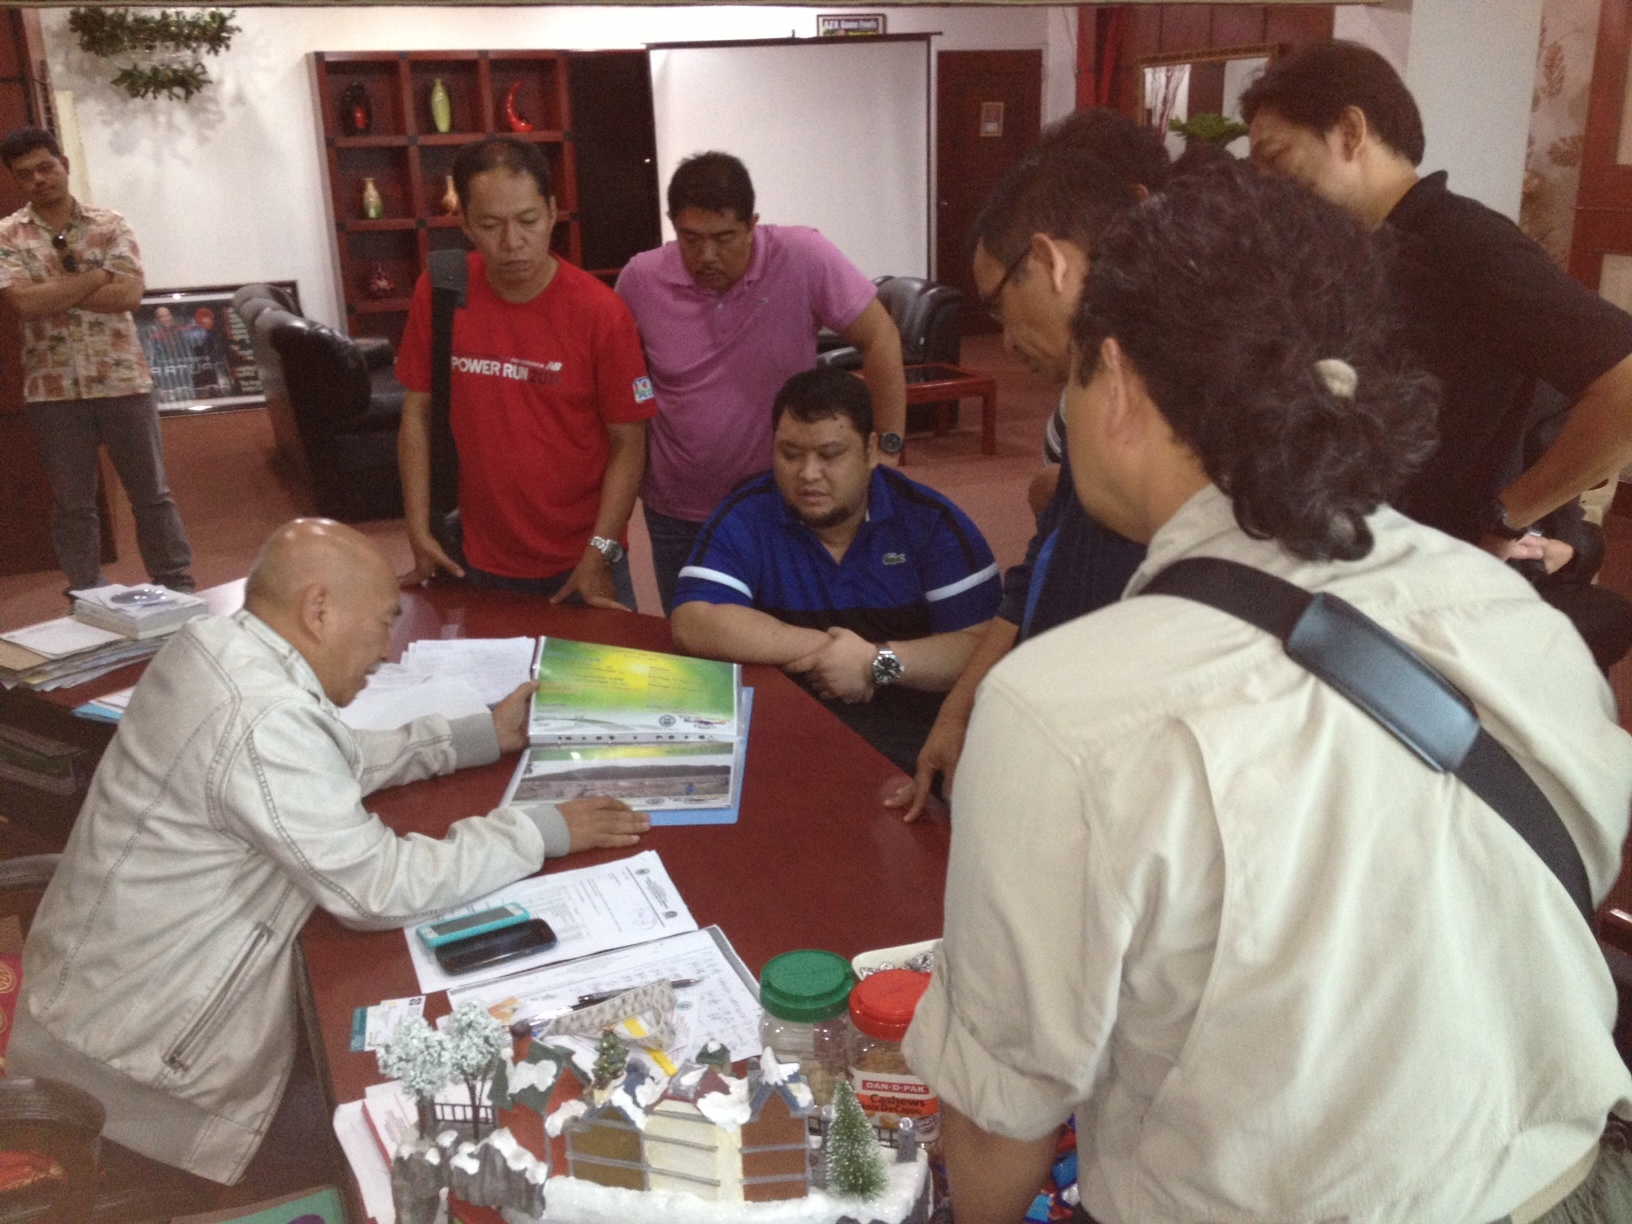 Arturo Uy (left), Provincial Governor of Compostella Valley, shares with us the typhoon devastated areas declared as geo-hazard zones. I was accompanying Assistant Secretary Rolando Cucio, Office of the President – Republic of the Philippines (standing in front of me), as he was making an assessment of the typhoon-devastated areas along with his technical staff. This is part of the consultation process we're doing as we make our operational transition from relief to rehabilitation.